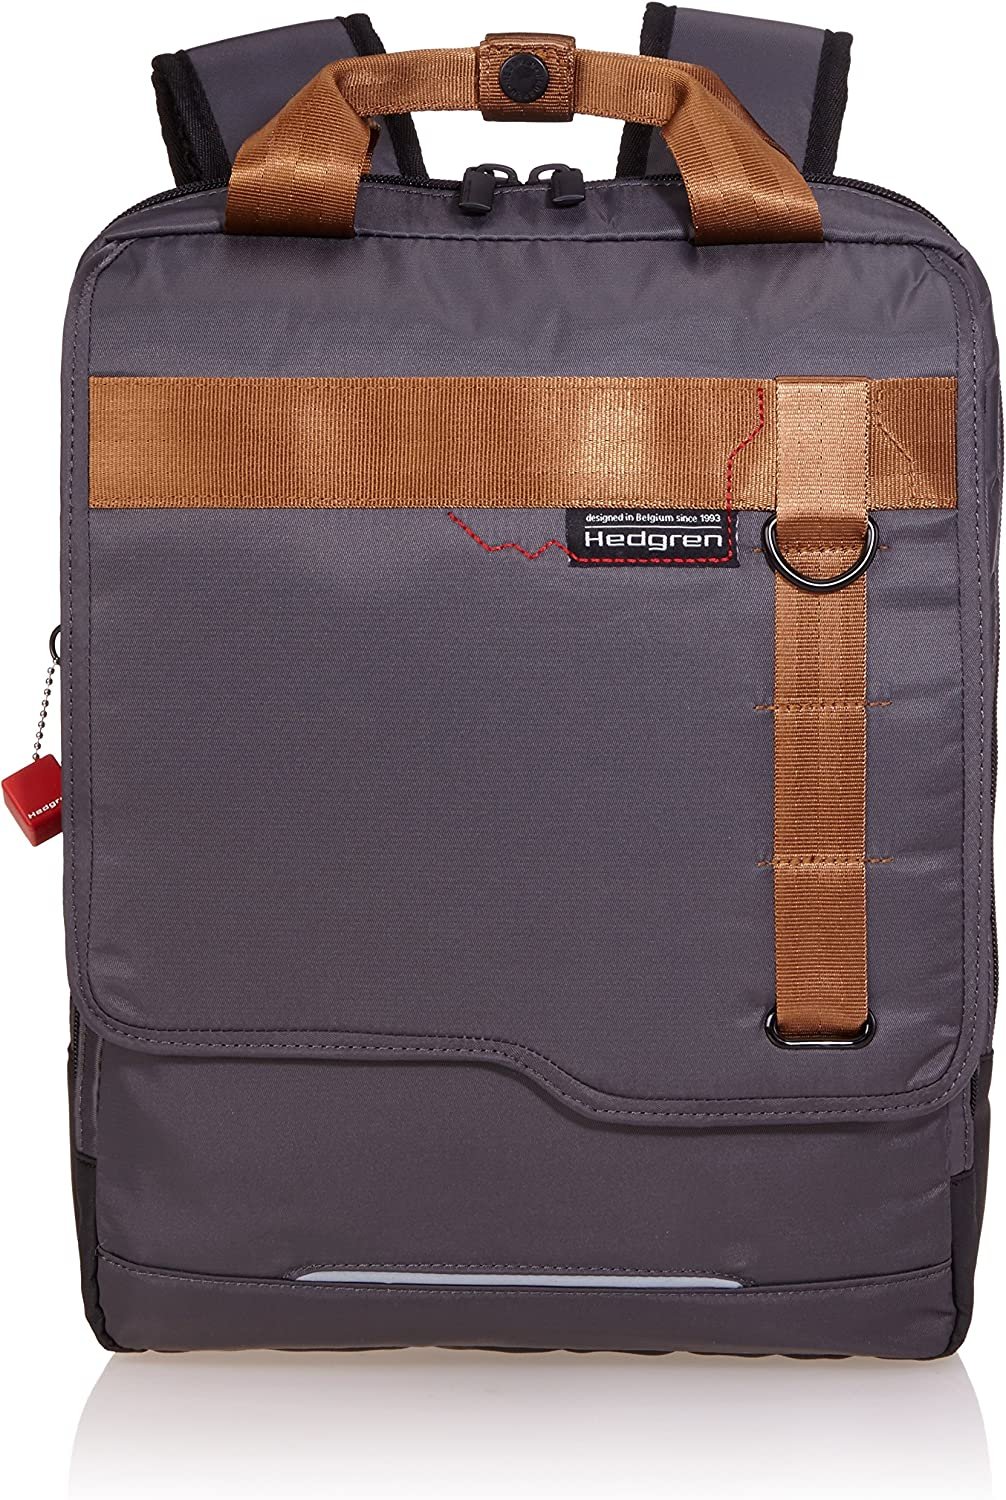 Hedgren Casual Daypack HNW10 66501 Grey 9. L